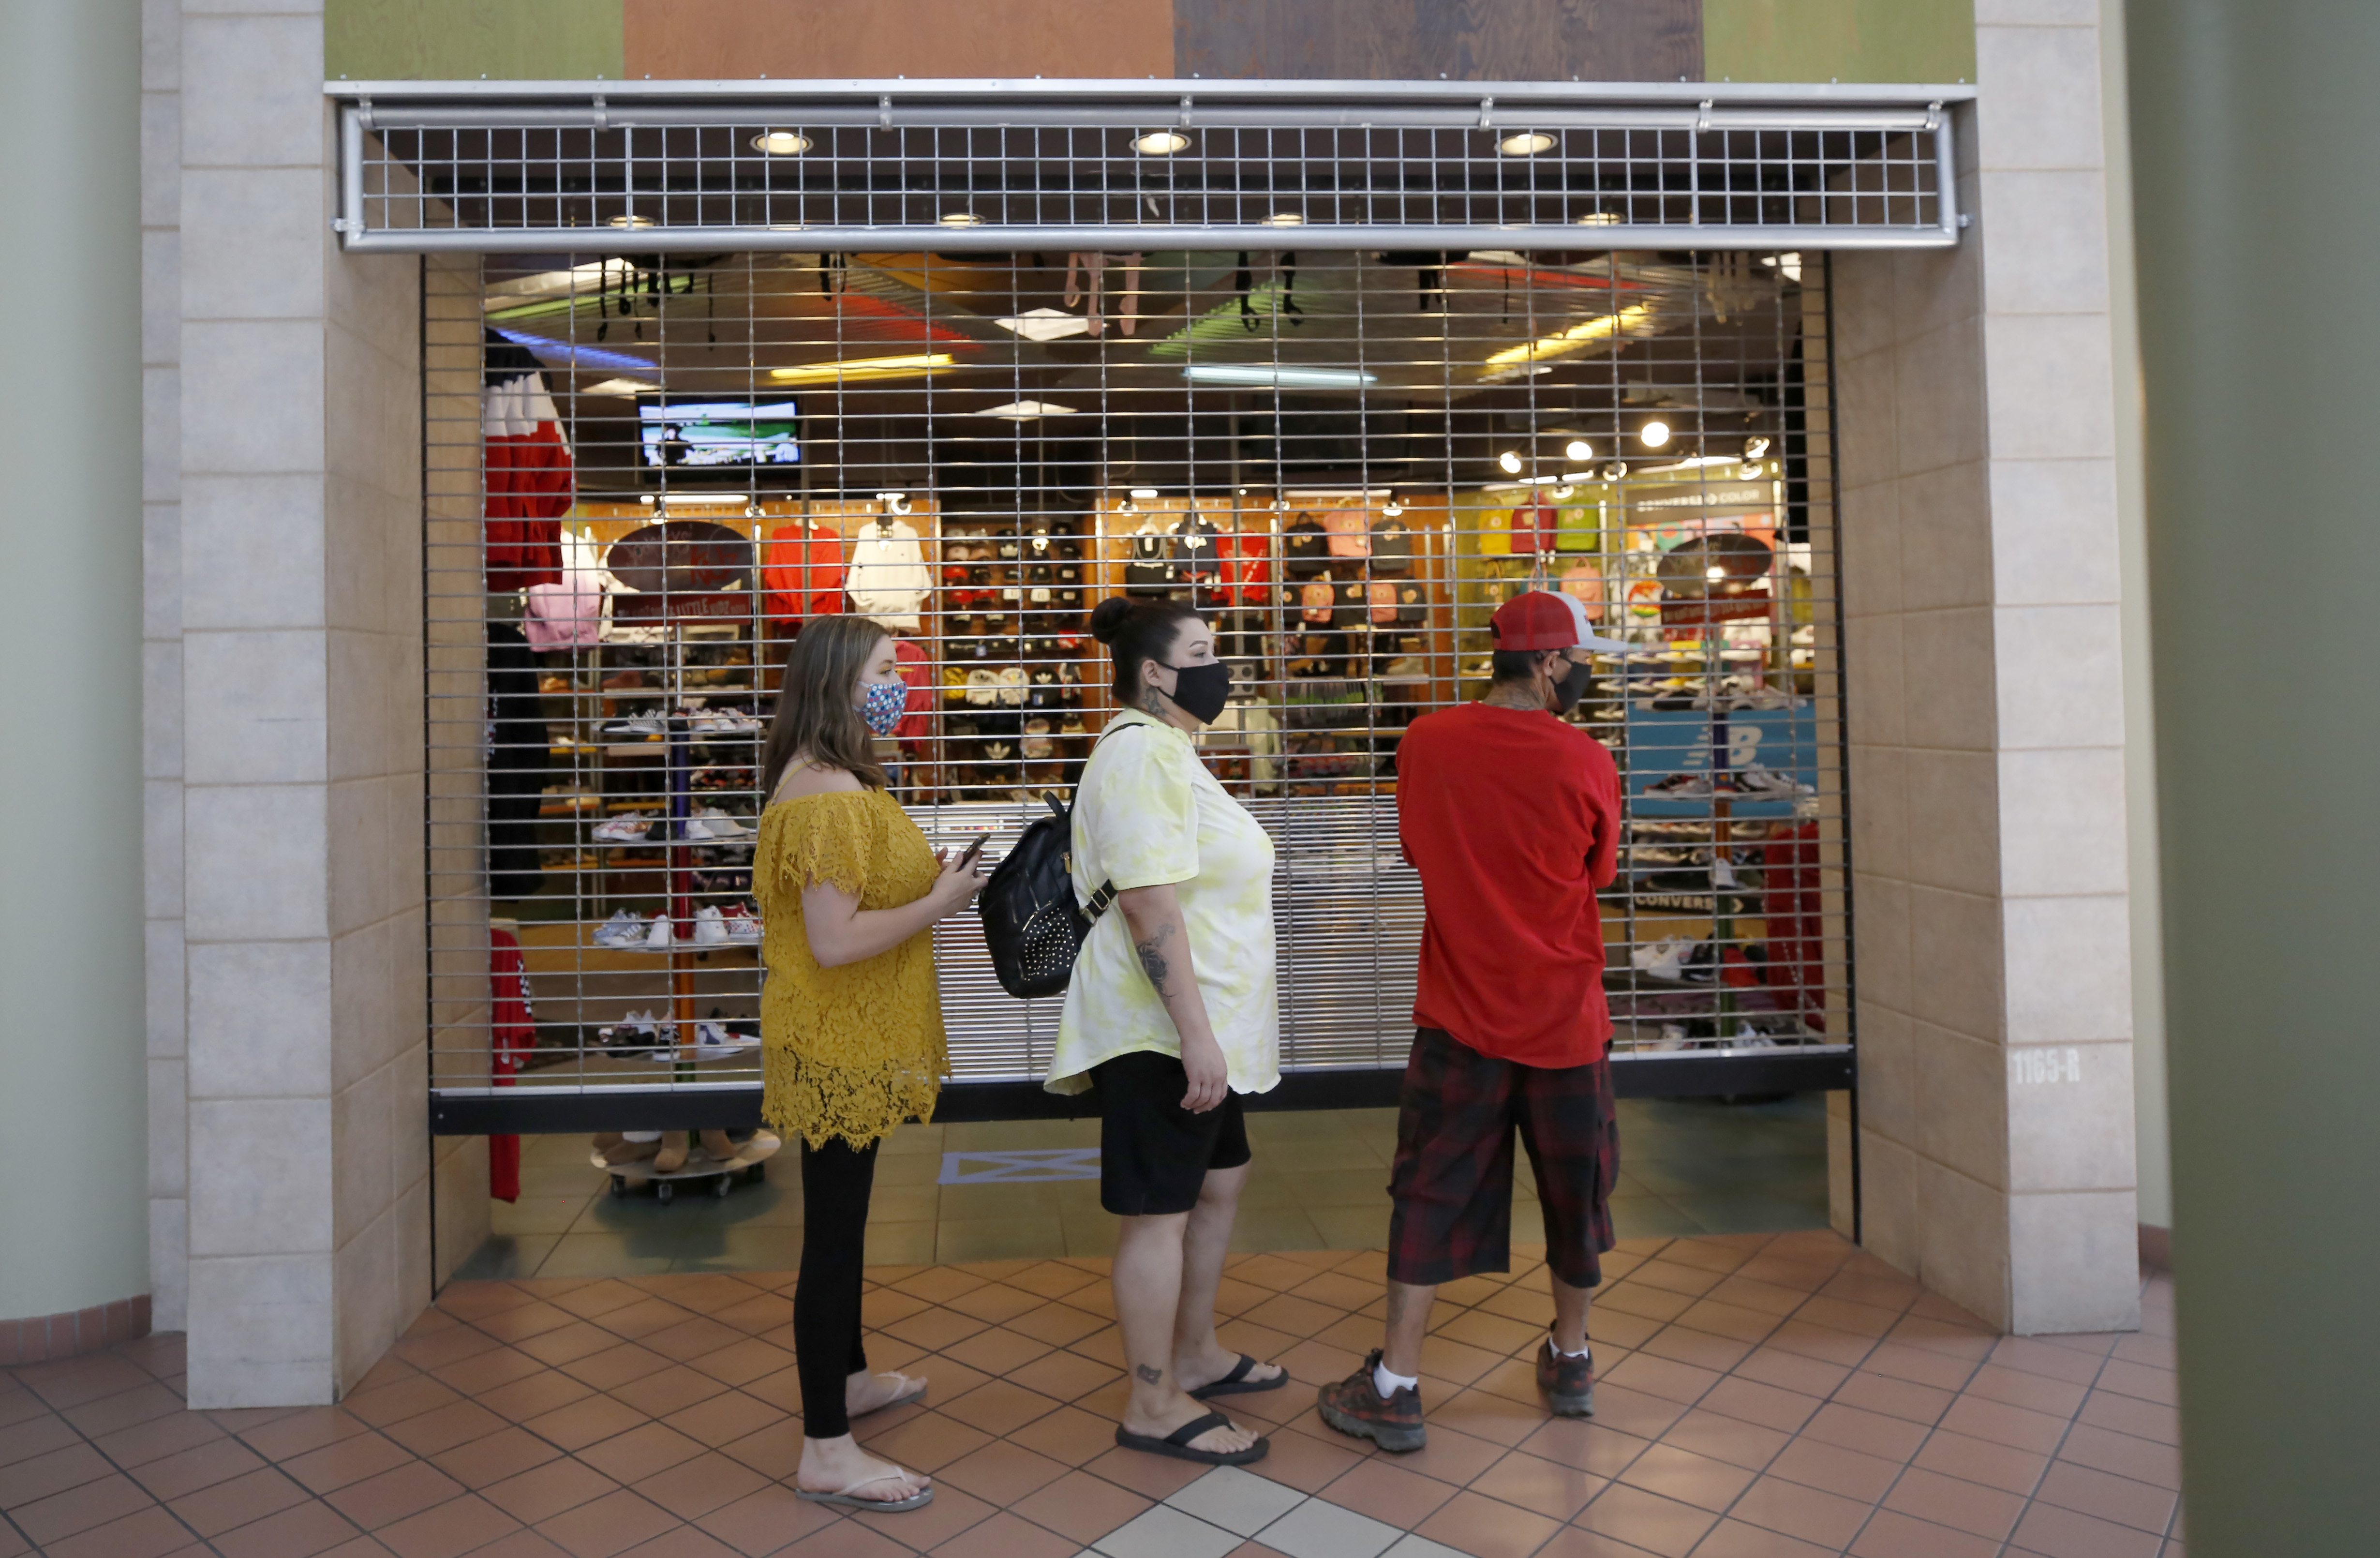 People wait for a Journey's shoe store to open at the Yuba Sutter Mall in Yuba City, California, on May 6.